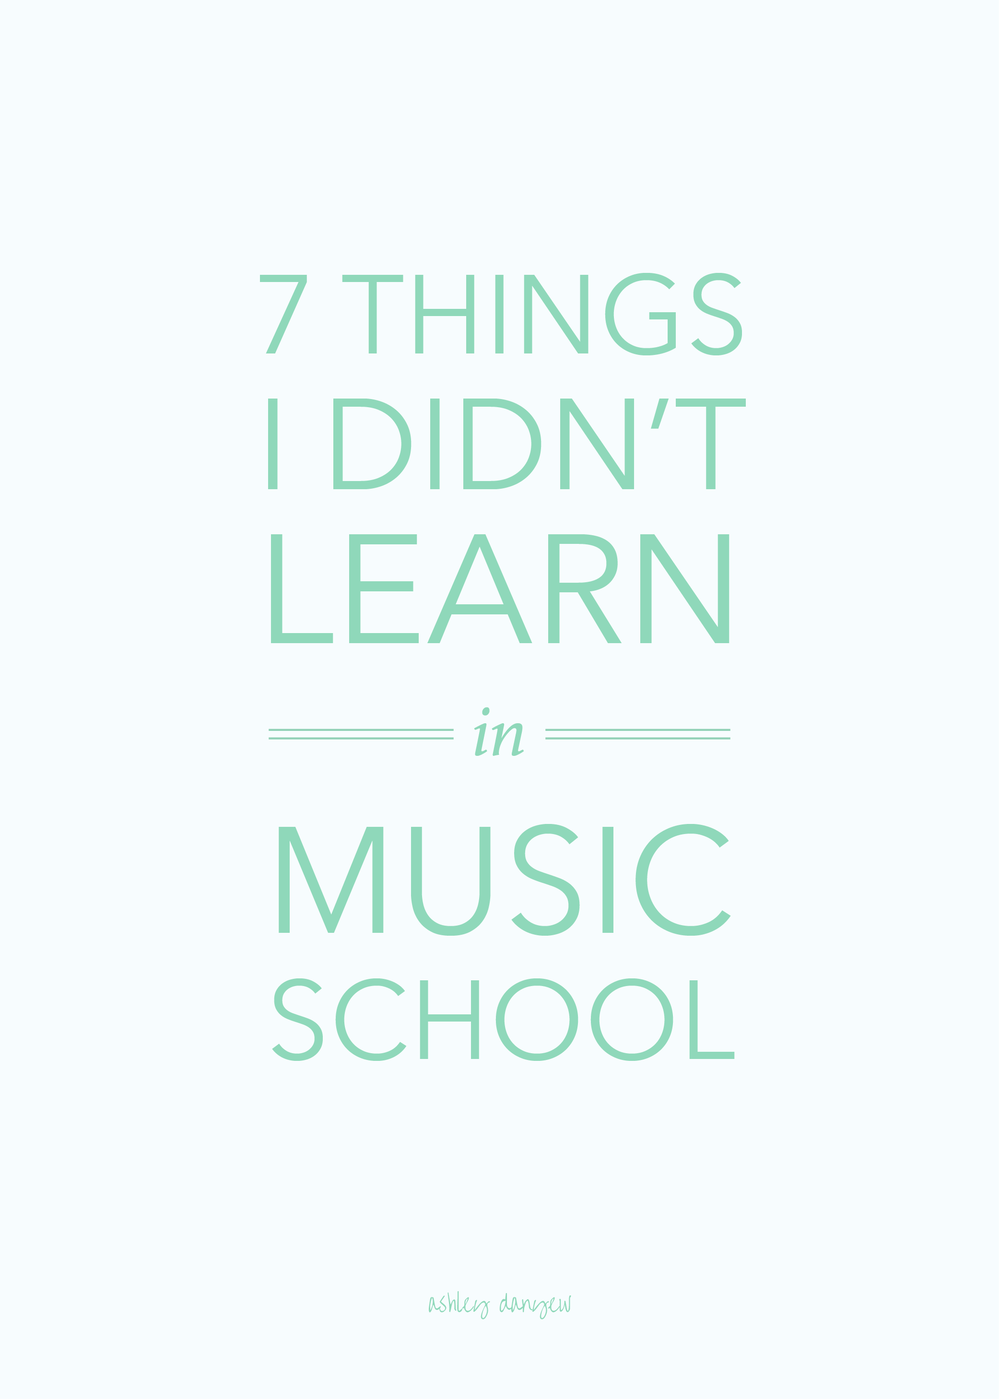 7 Things I Didn't Learn in Music School-73.png